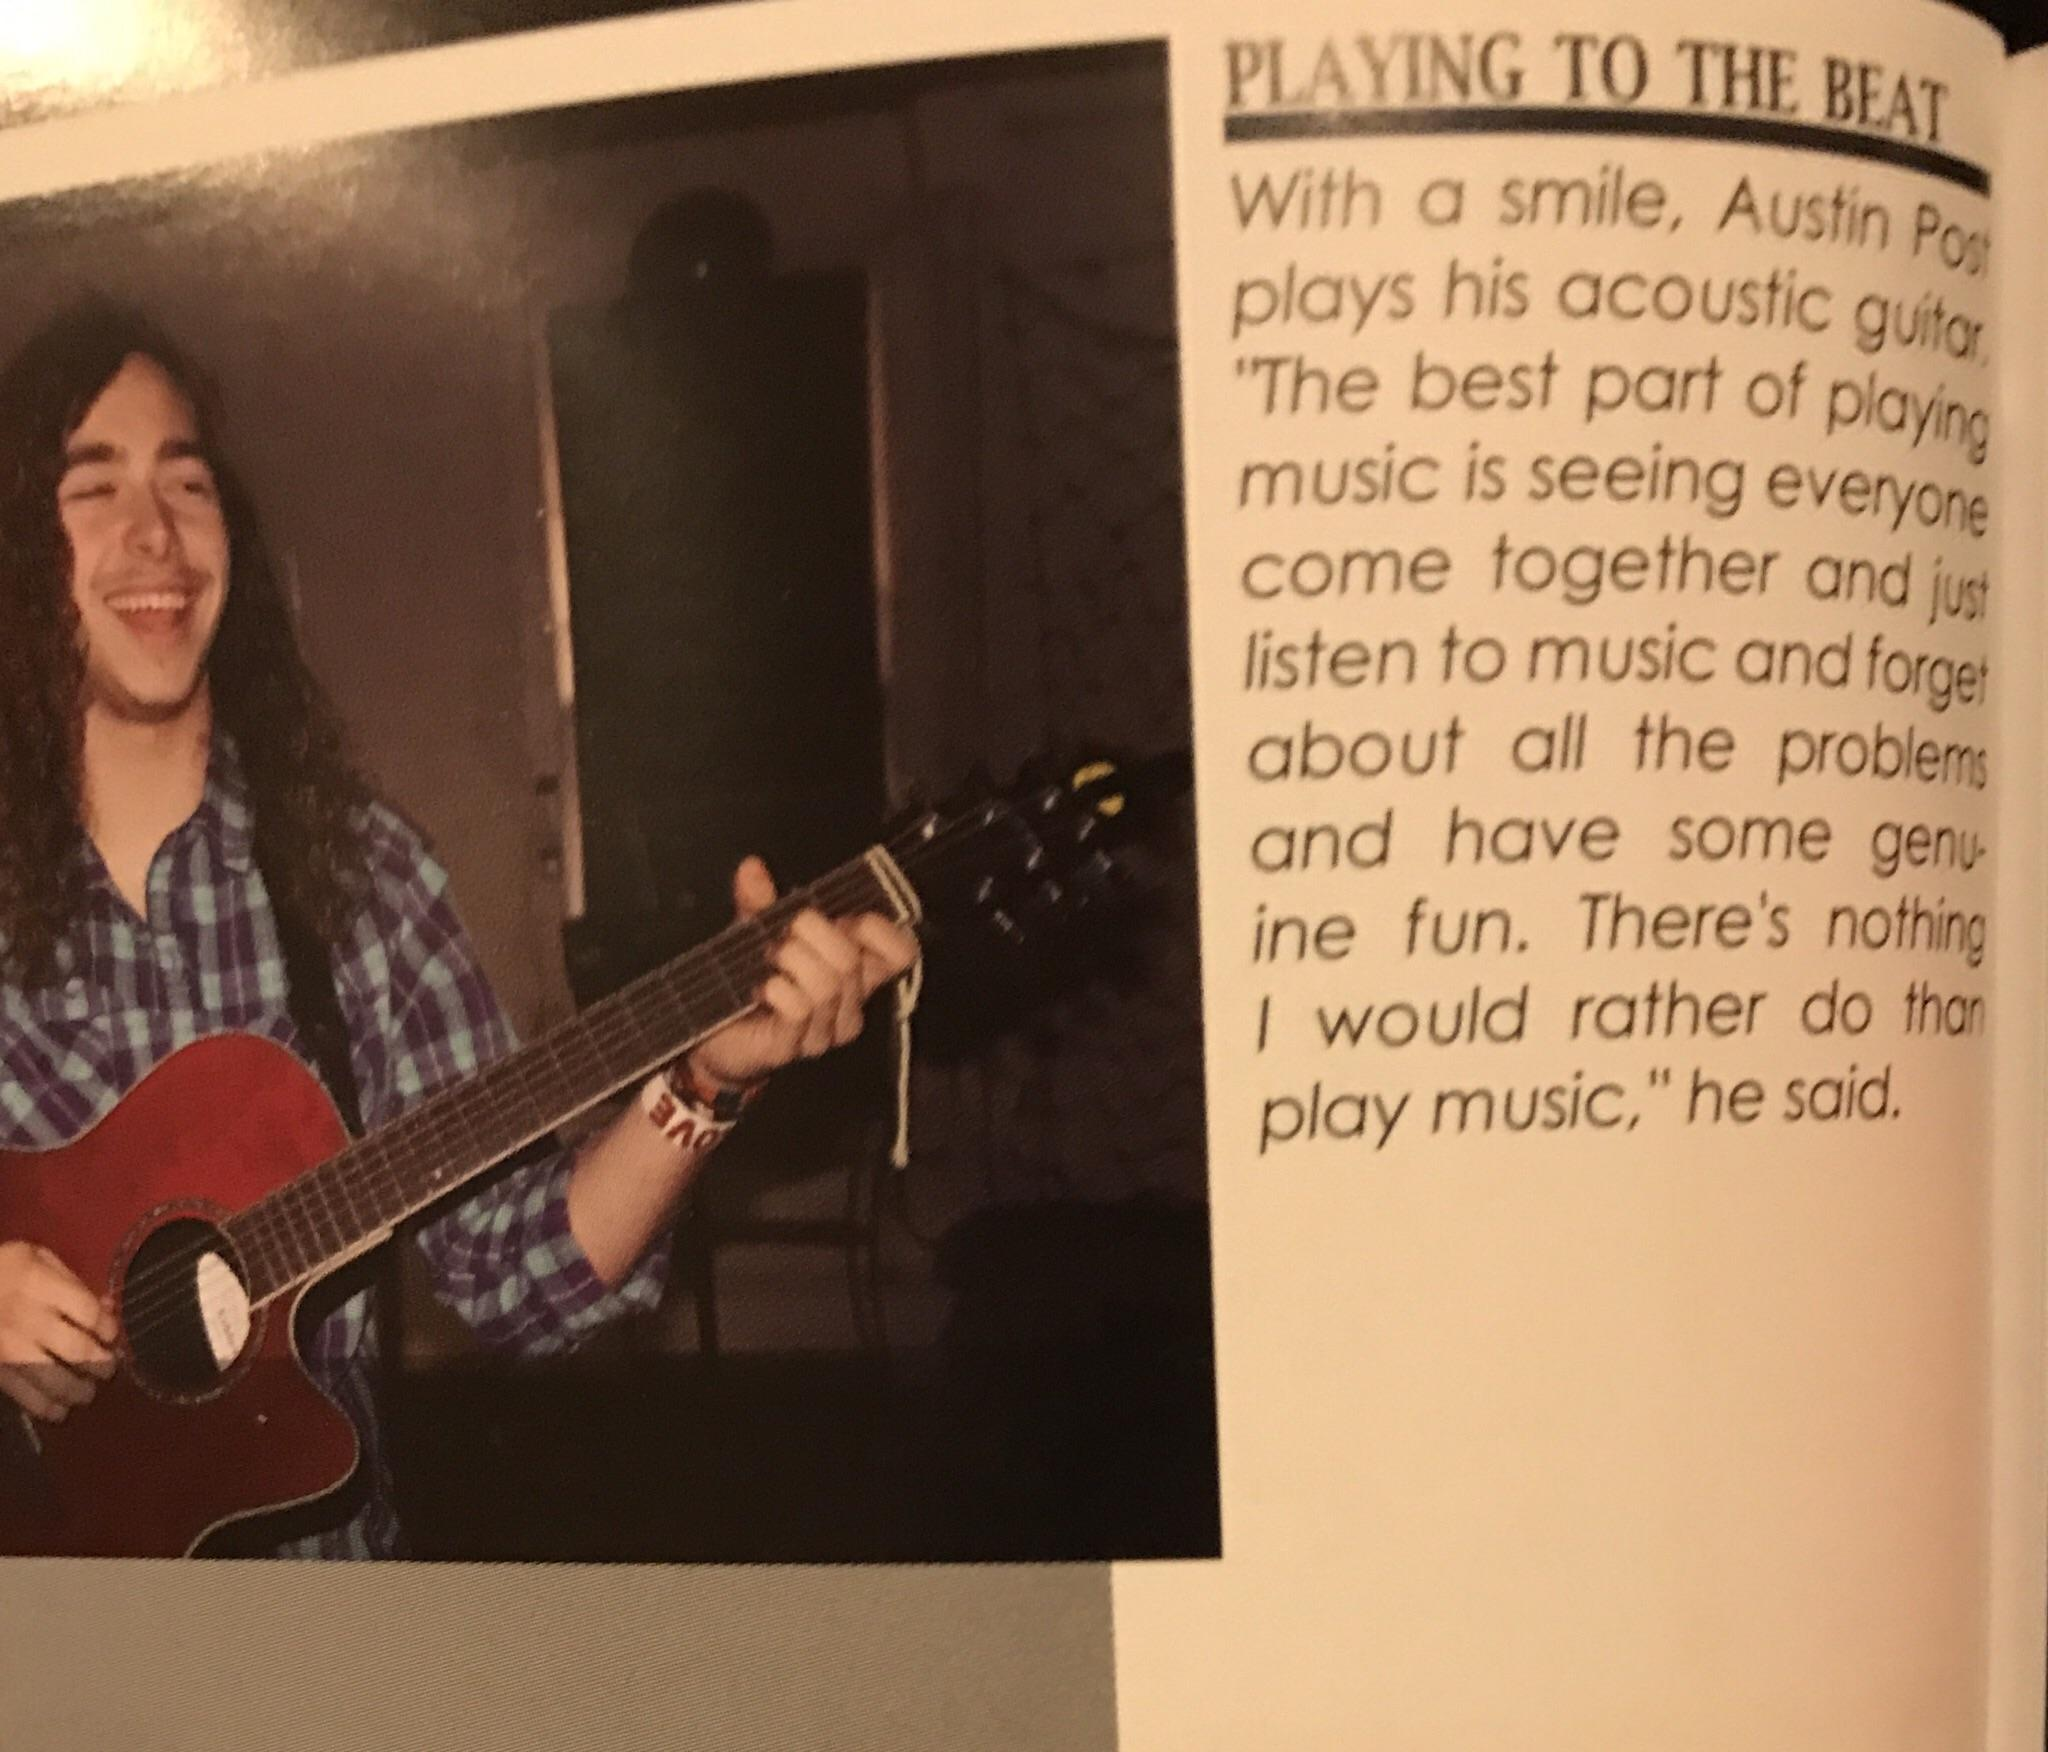 [Image] Post Malone in his Highschool yearbook. Proof that dreams do come true.